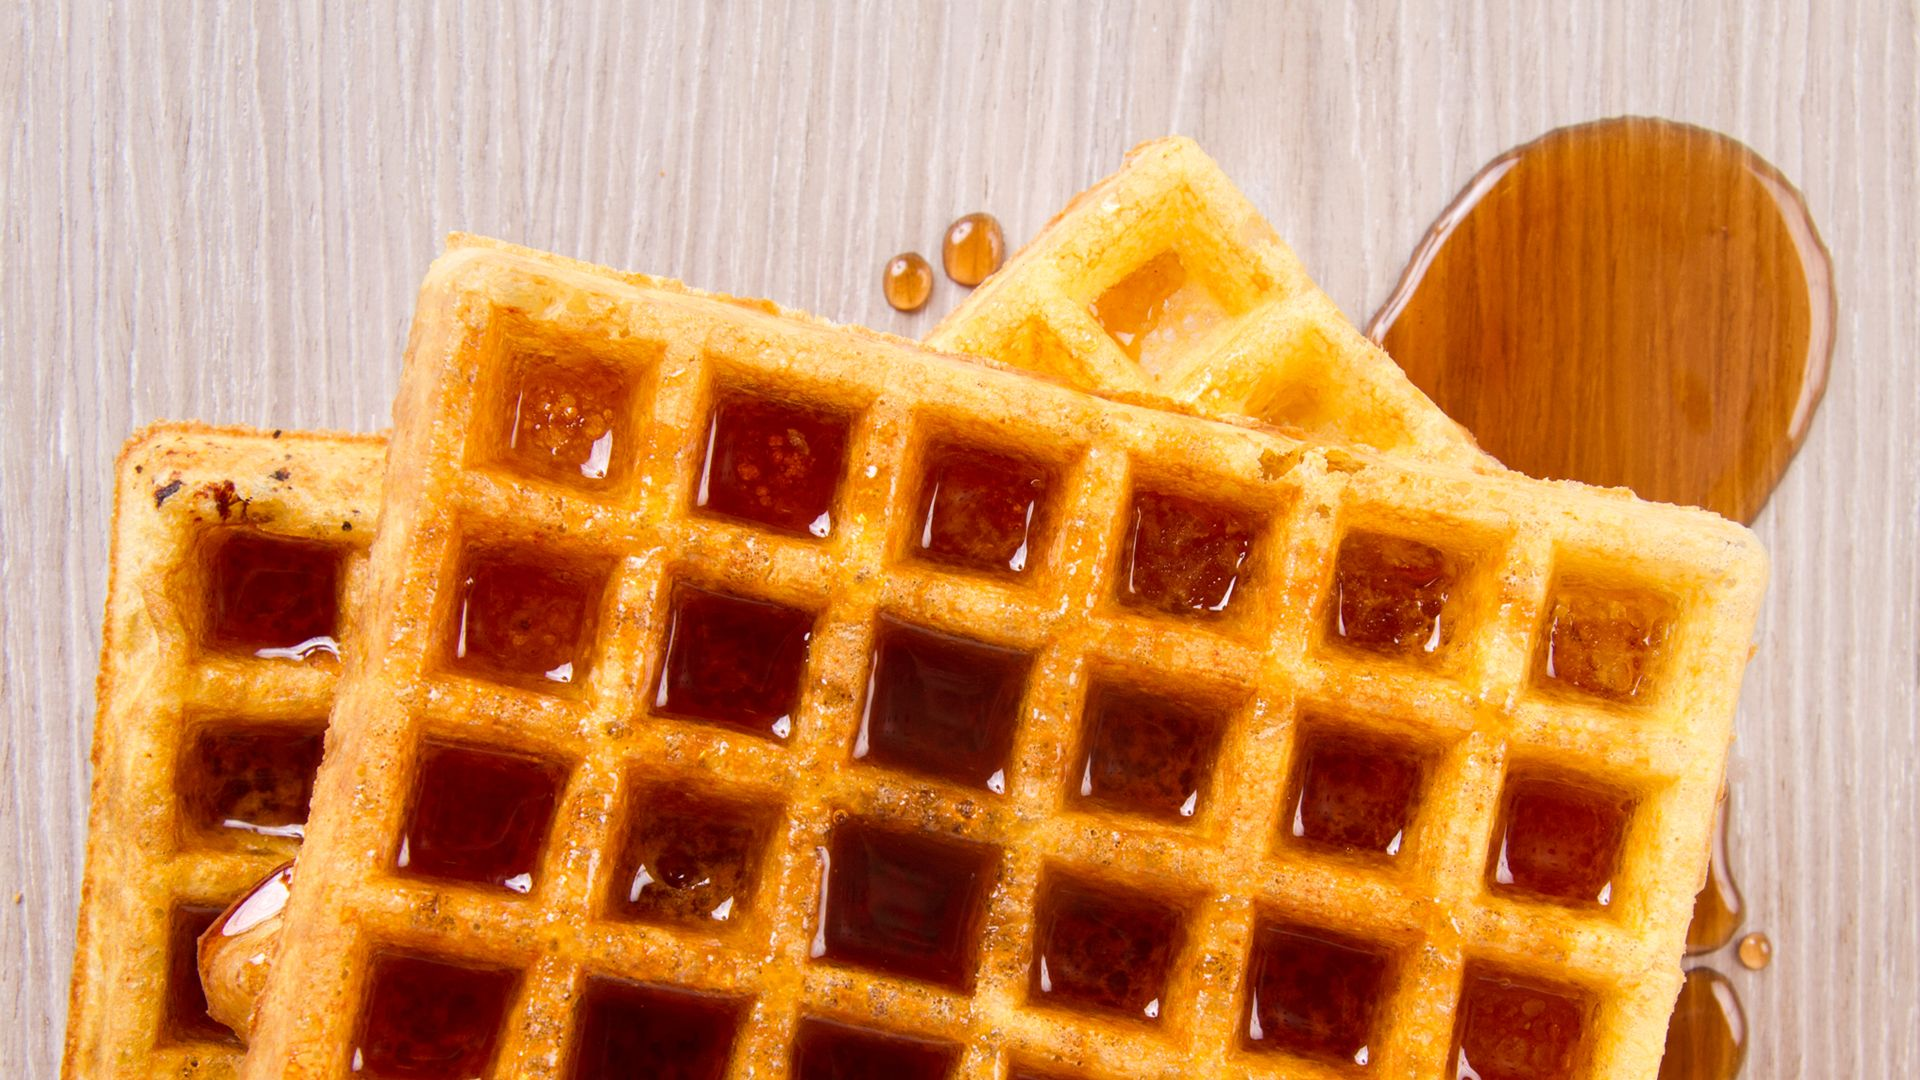 Gofre Mantequilla y Syrup - Crepes&Waffles